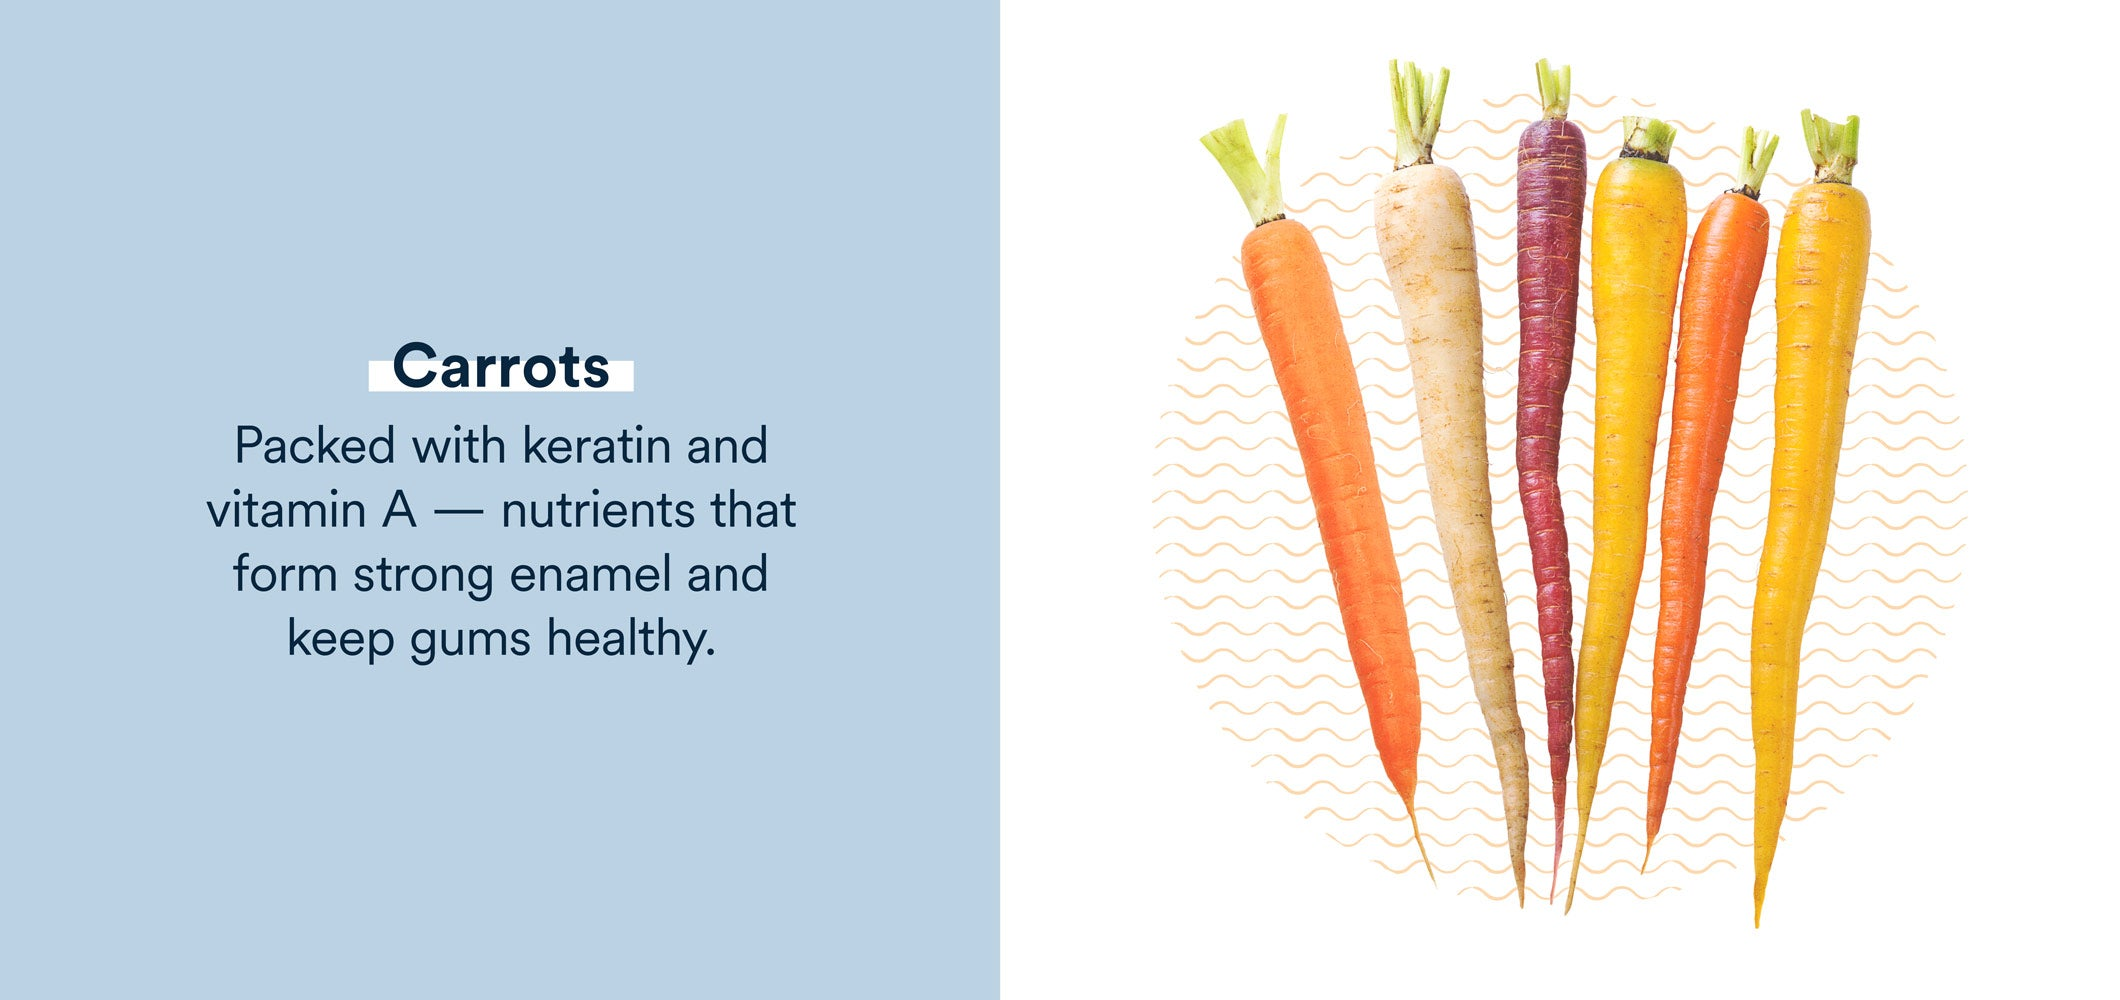 carrots are packed with nutrients that form strong enamel